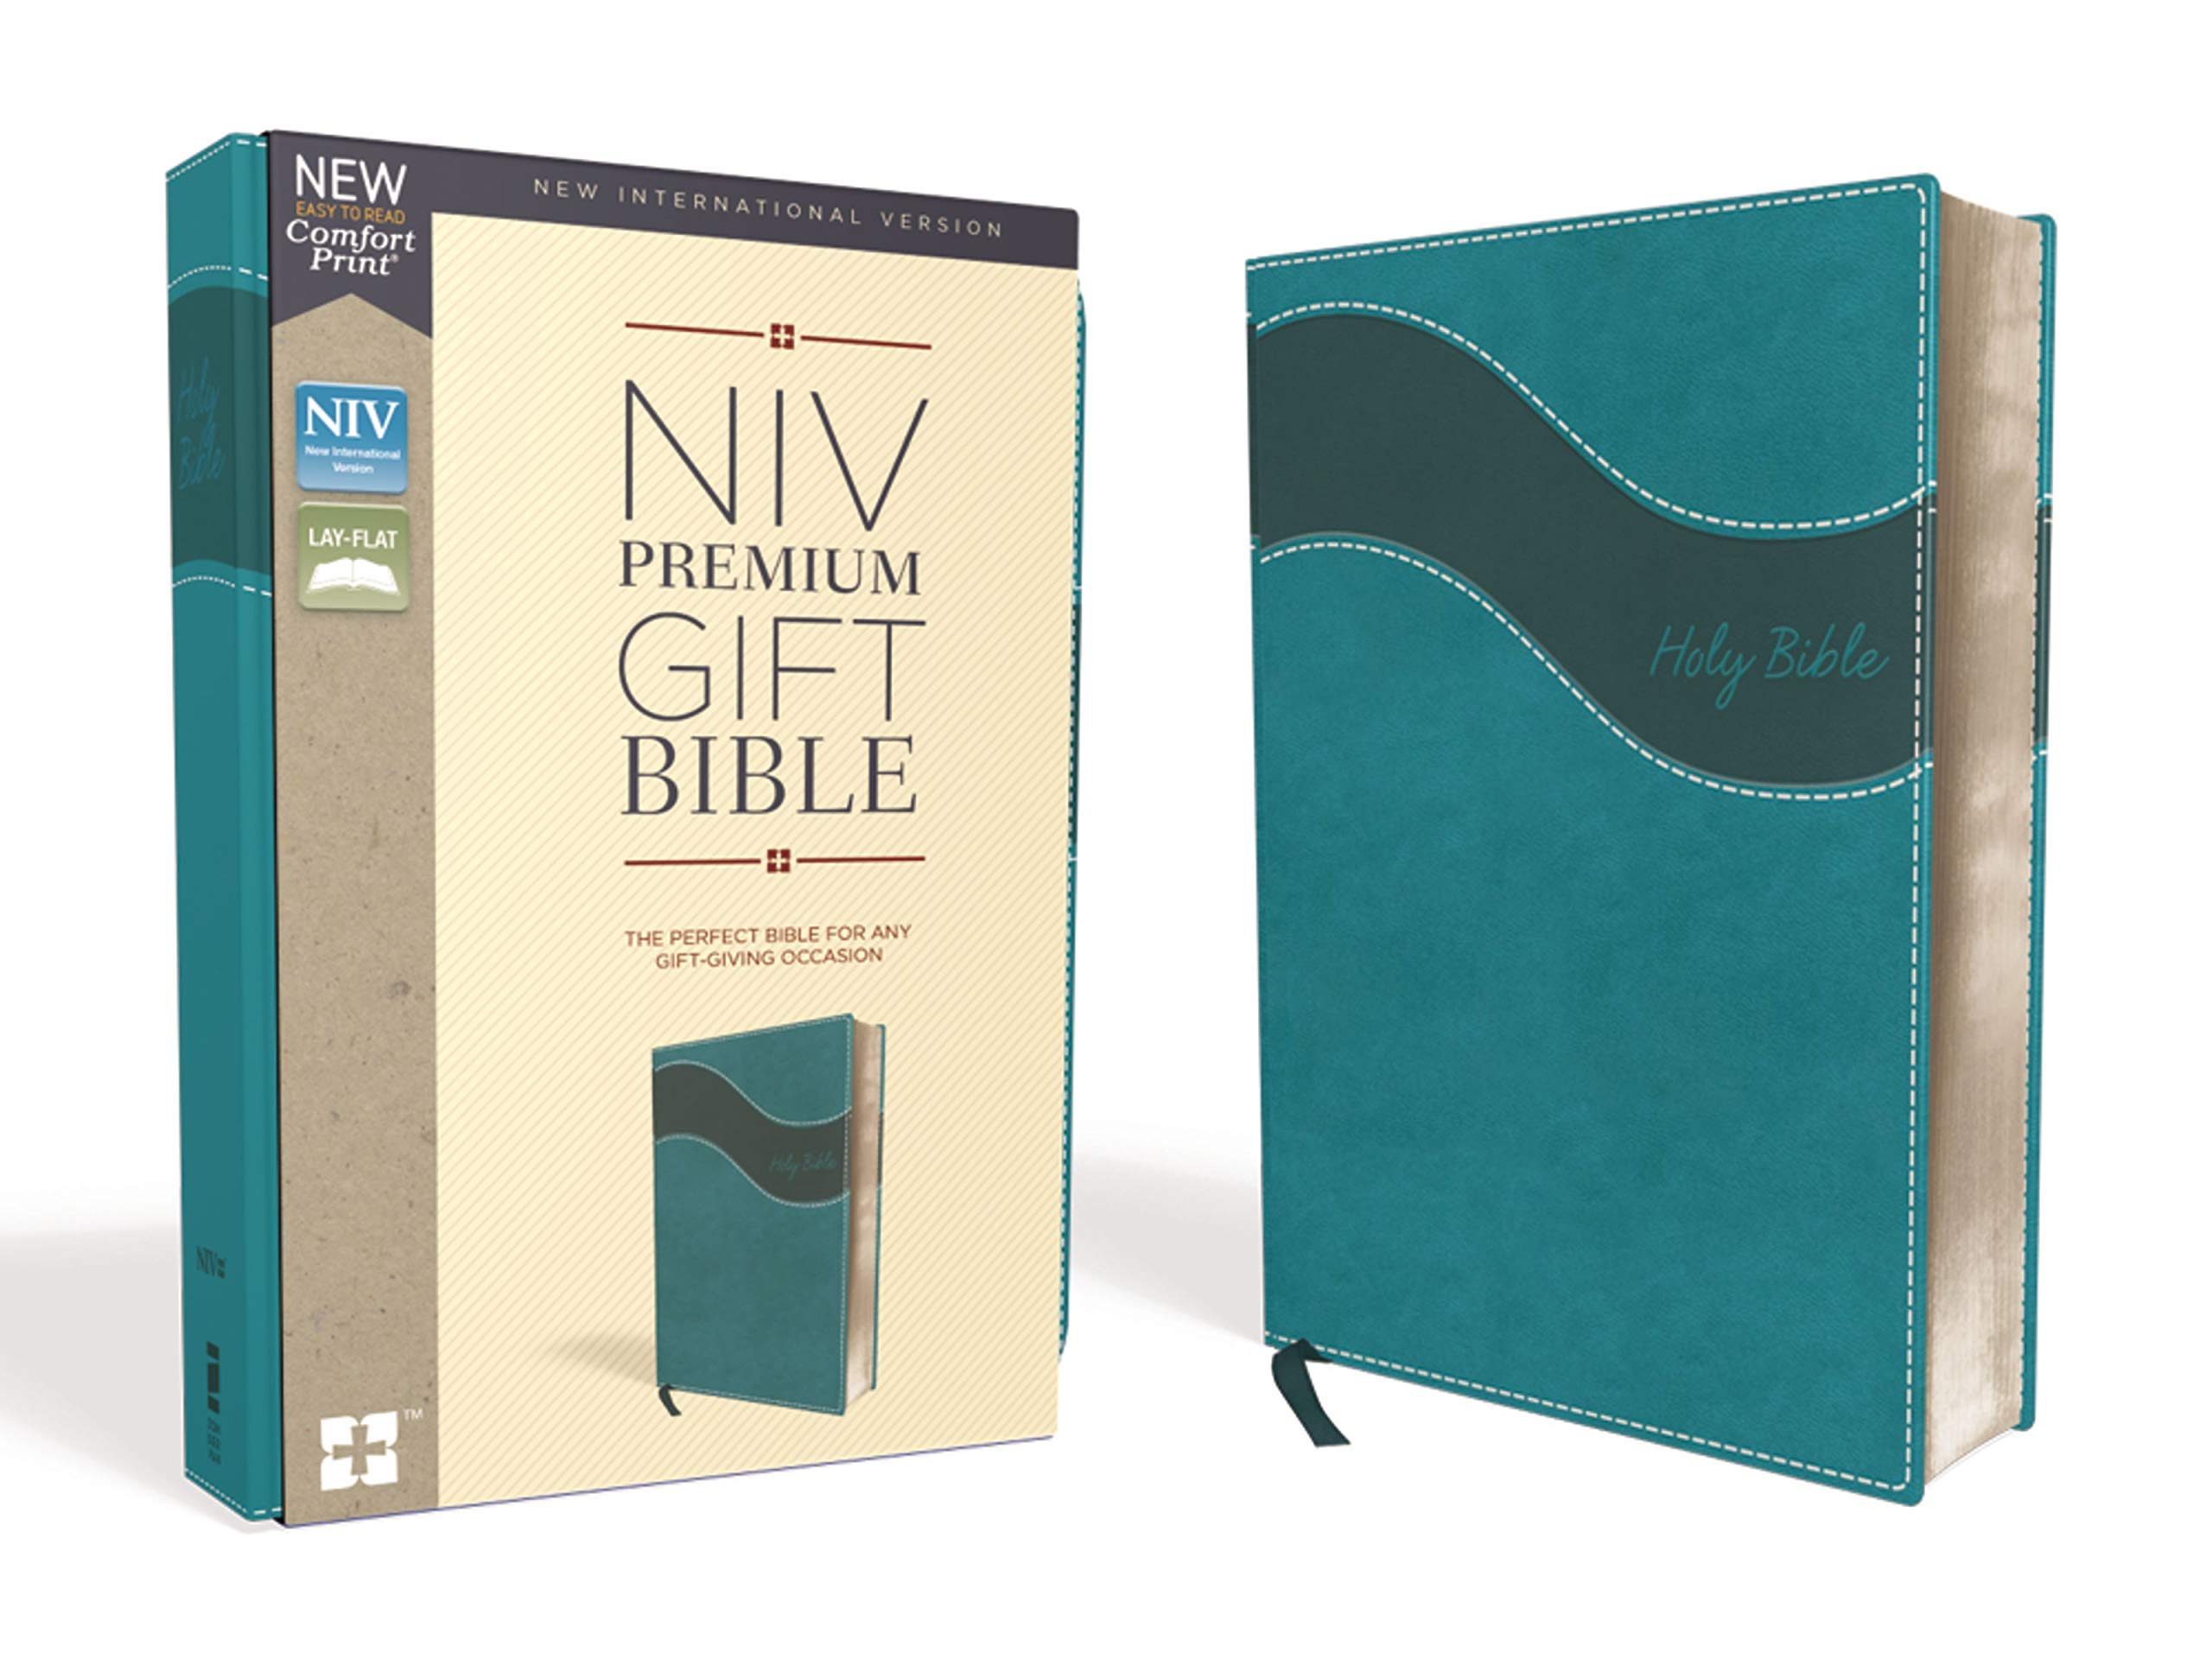 NIV, Premium Gift Bible, Leathersoft, Teal, Red